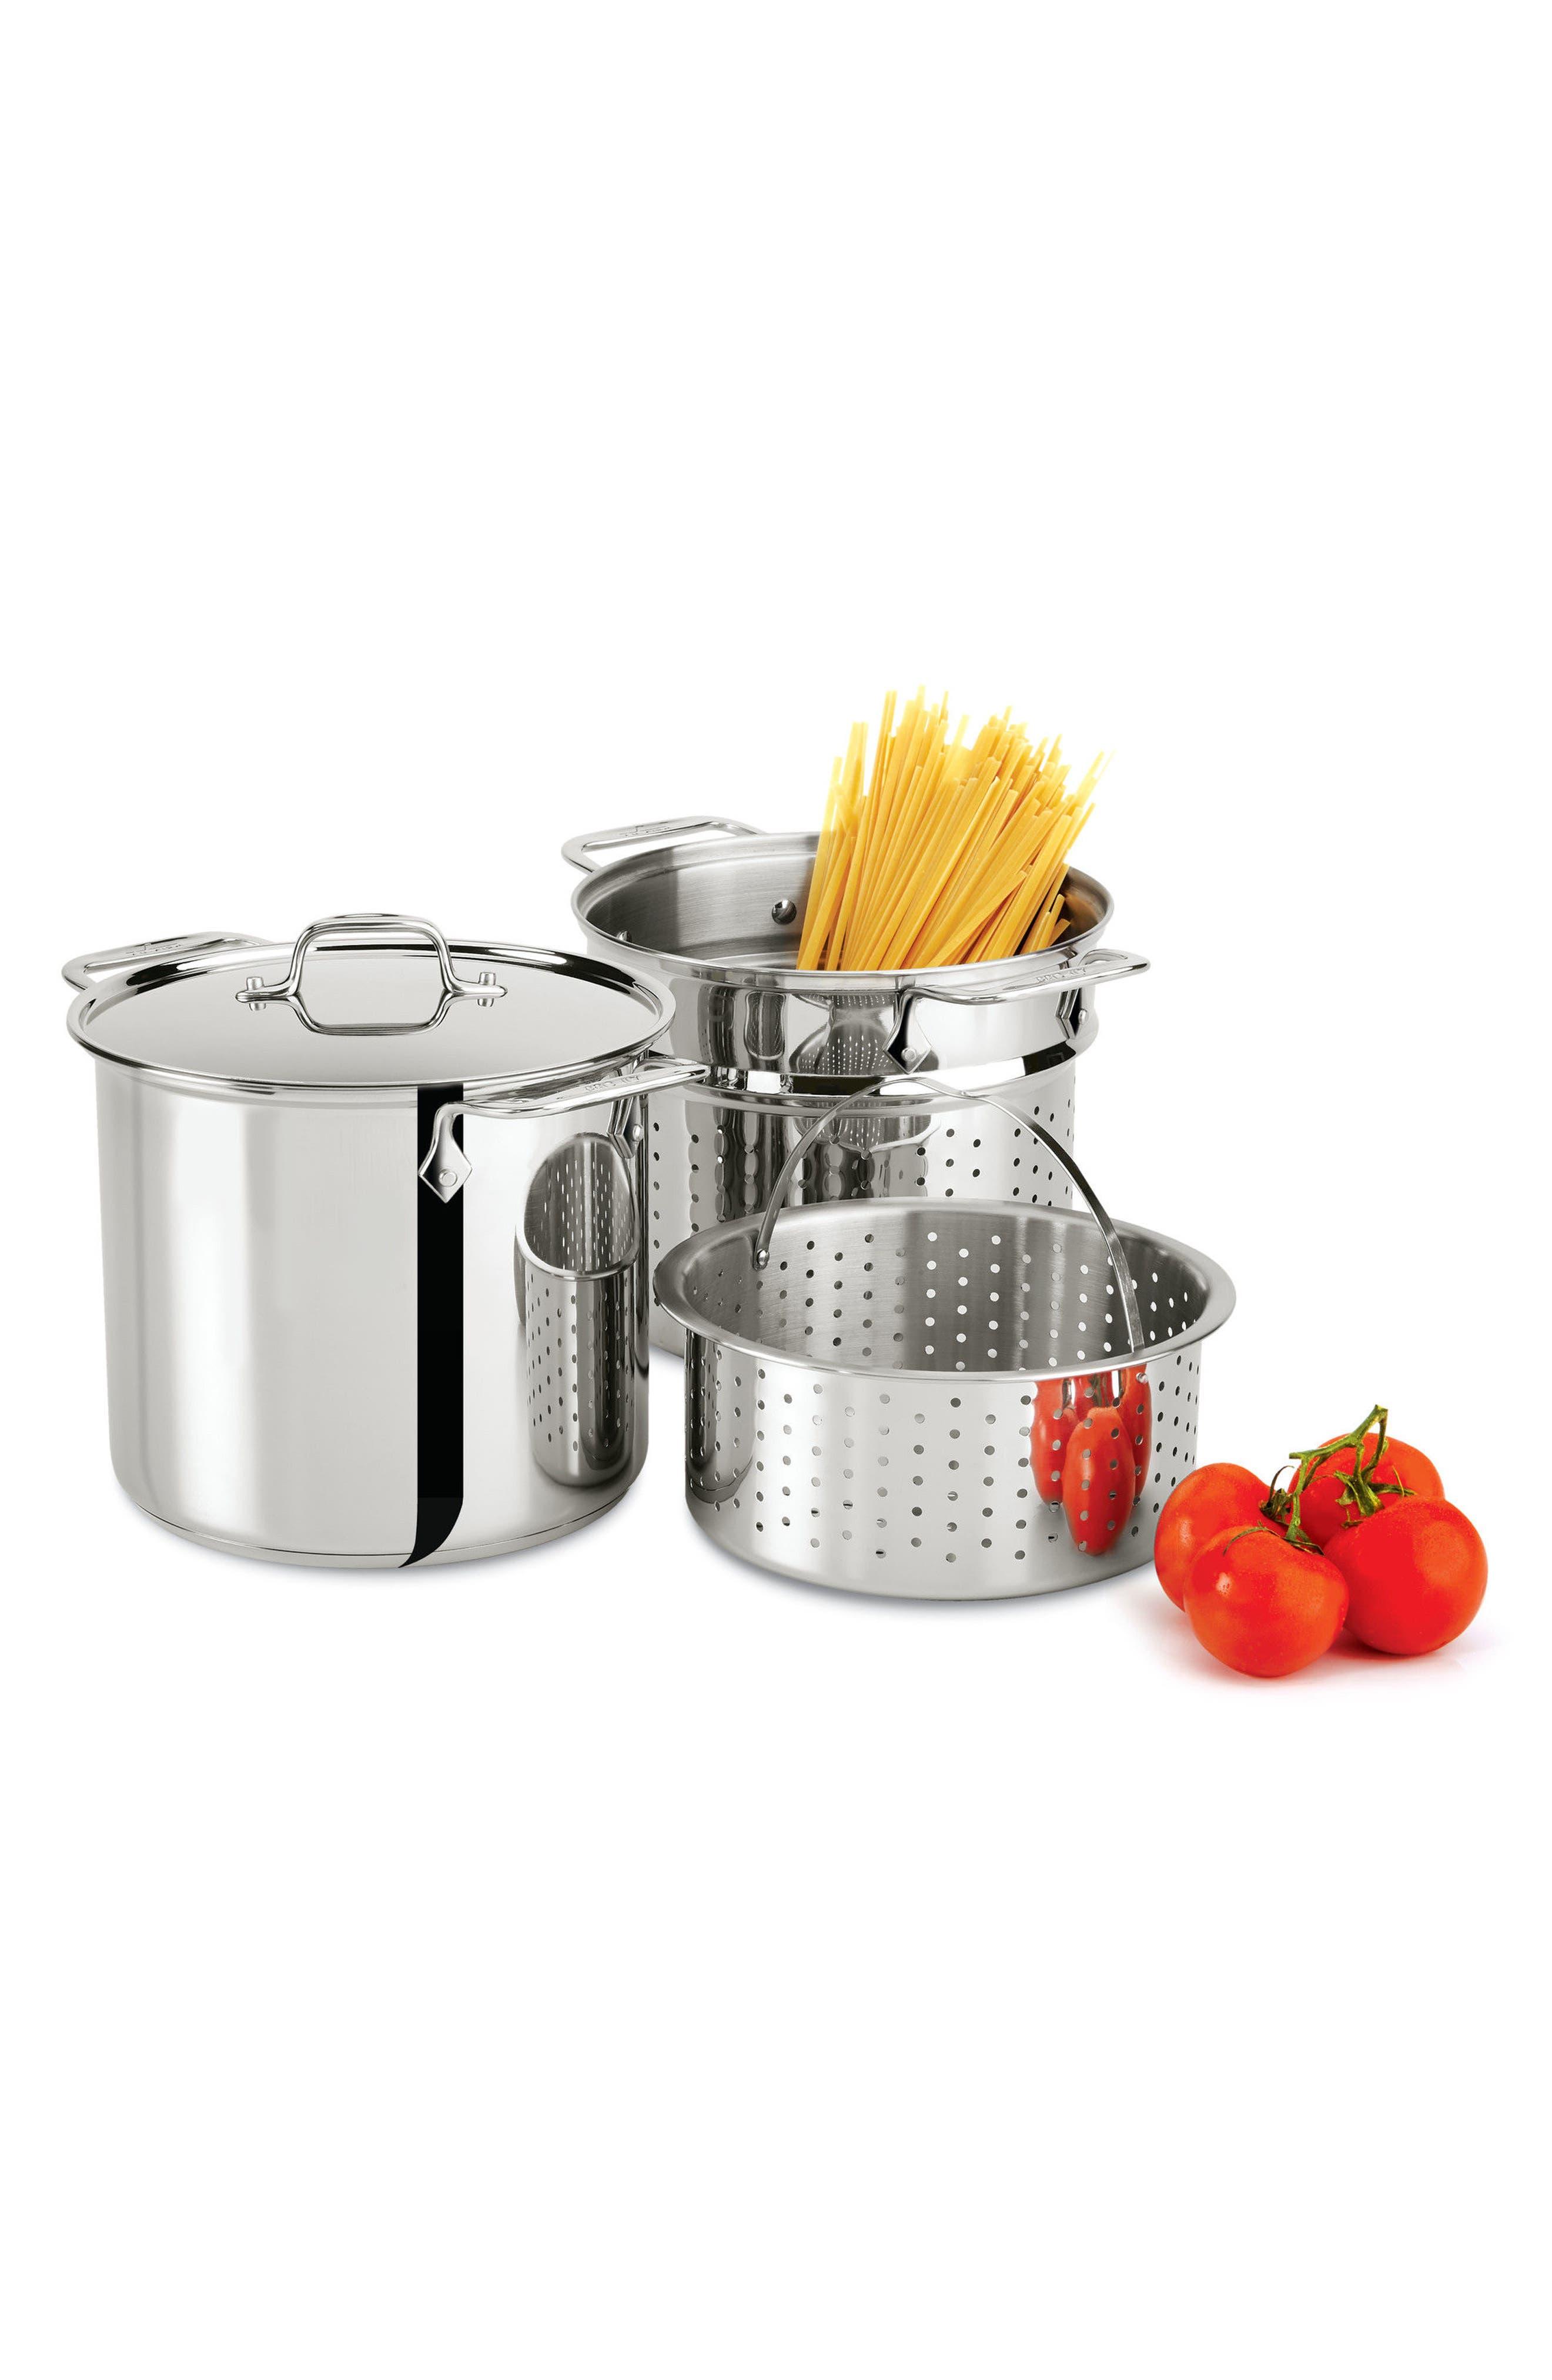 8-Quart 4-Piece Stainless Steel Multi Cooker,                             Alternate thumbnail 2, color,                             STAINLESS